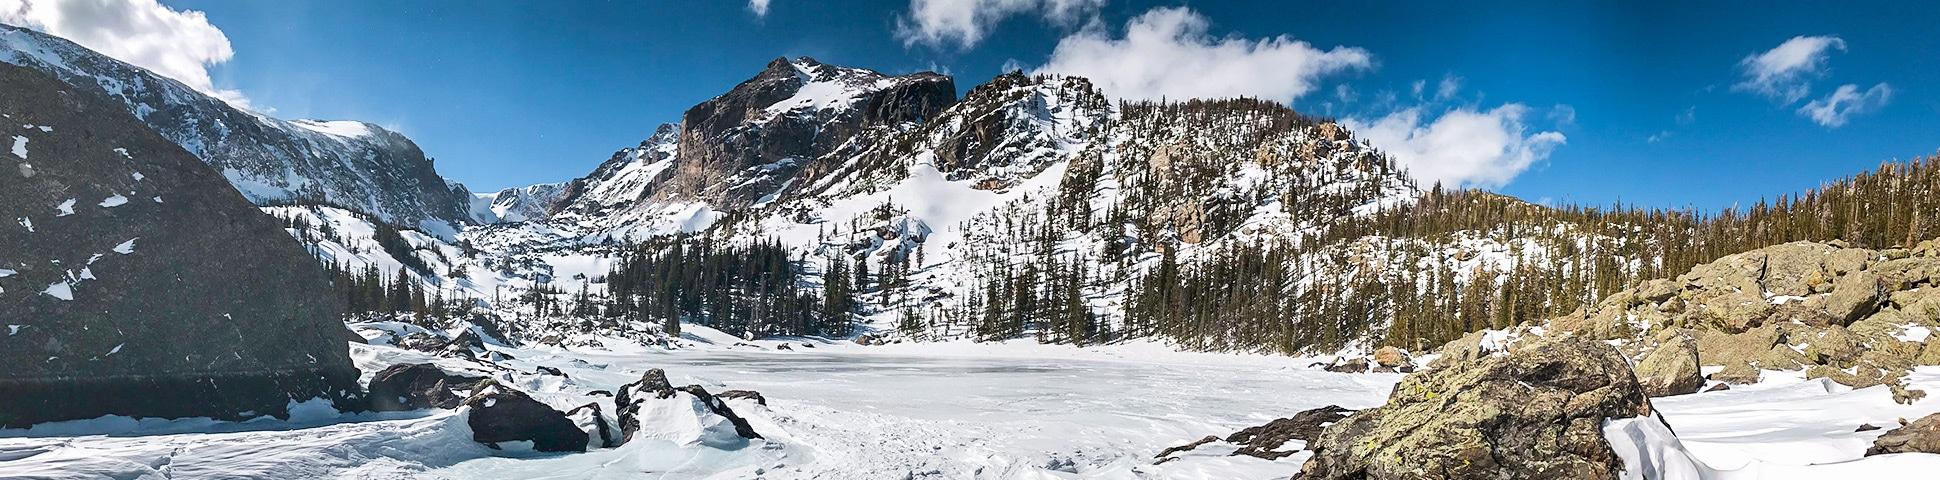 Best hiking trails in Rocky Mountain National Park, Colorado